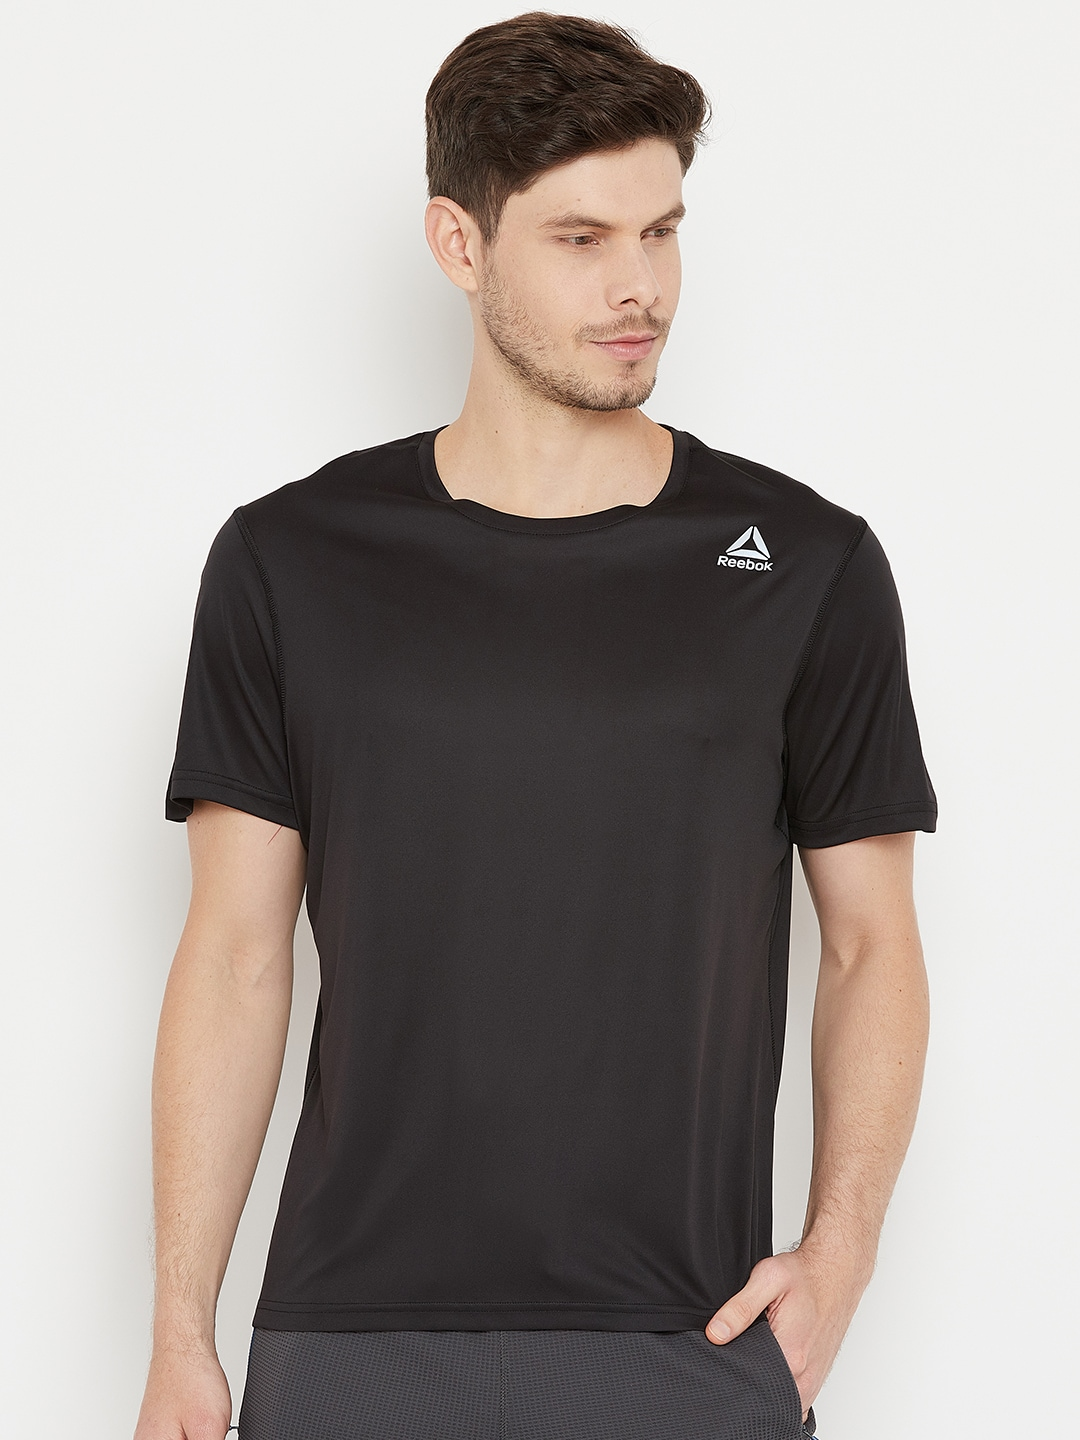 3b182605 Reebok Men Black Solid Round Neck Running T-shirt